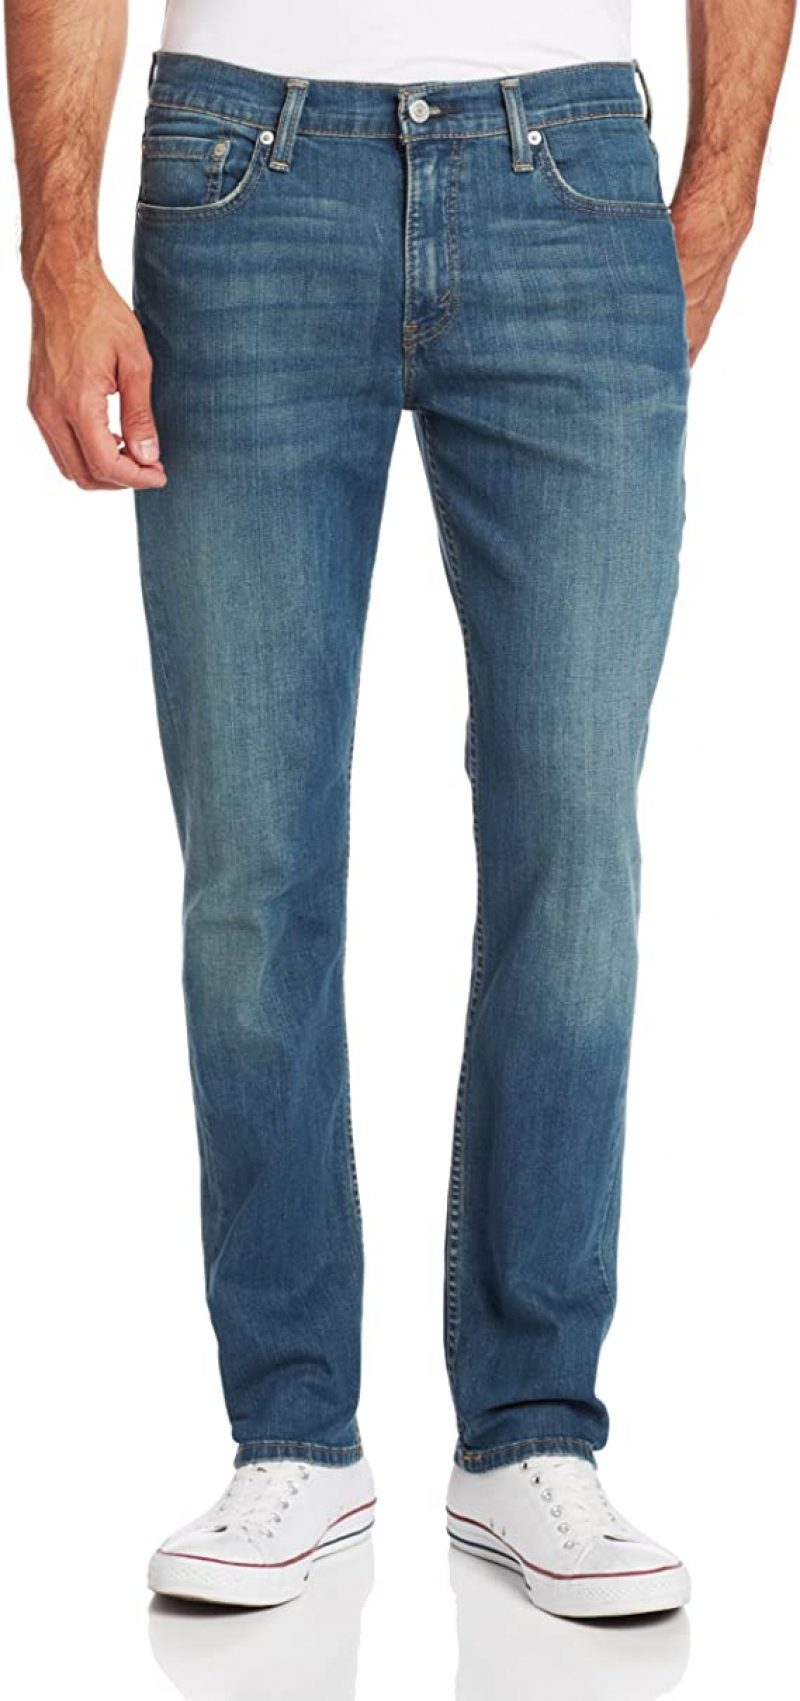 ihocon: Levi's Men's 511 Slim Fit Jeans男士牛仔褲